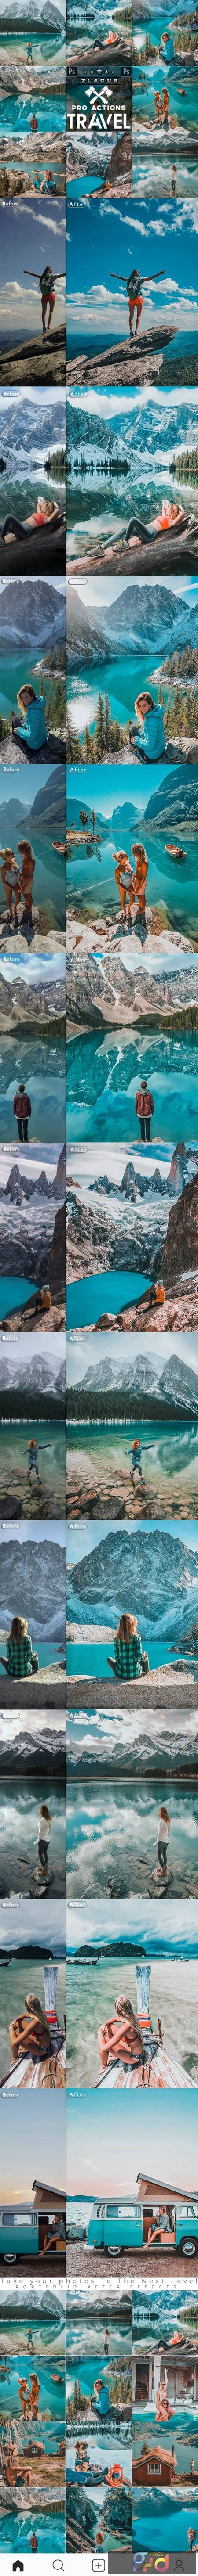 Travel Blogger Photoshop Actions 26629536 1